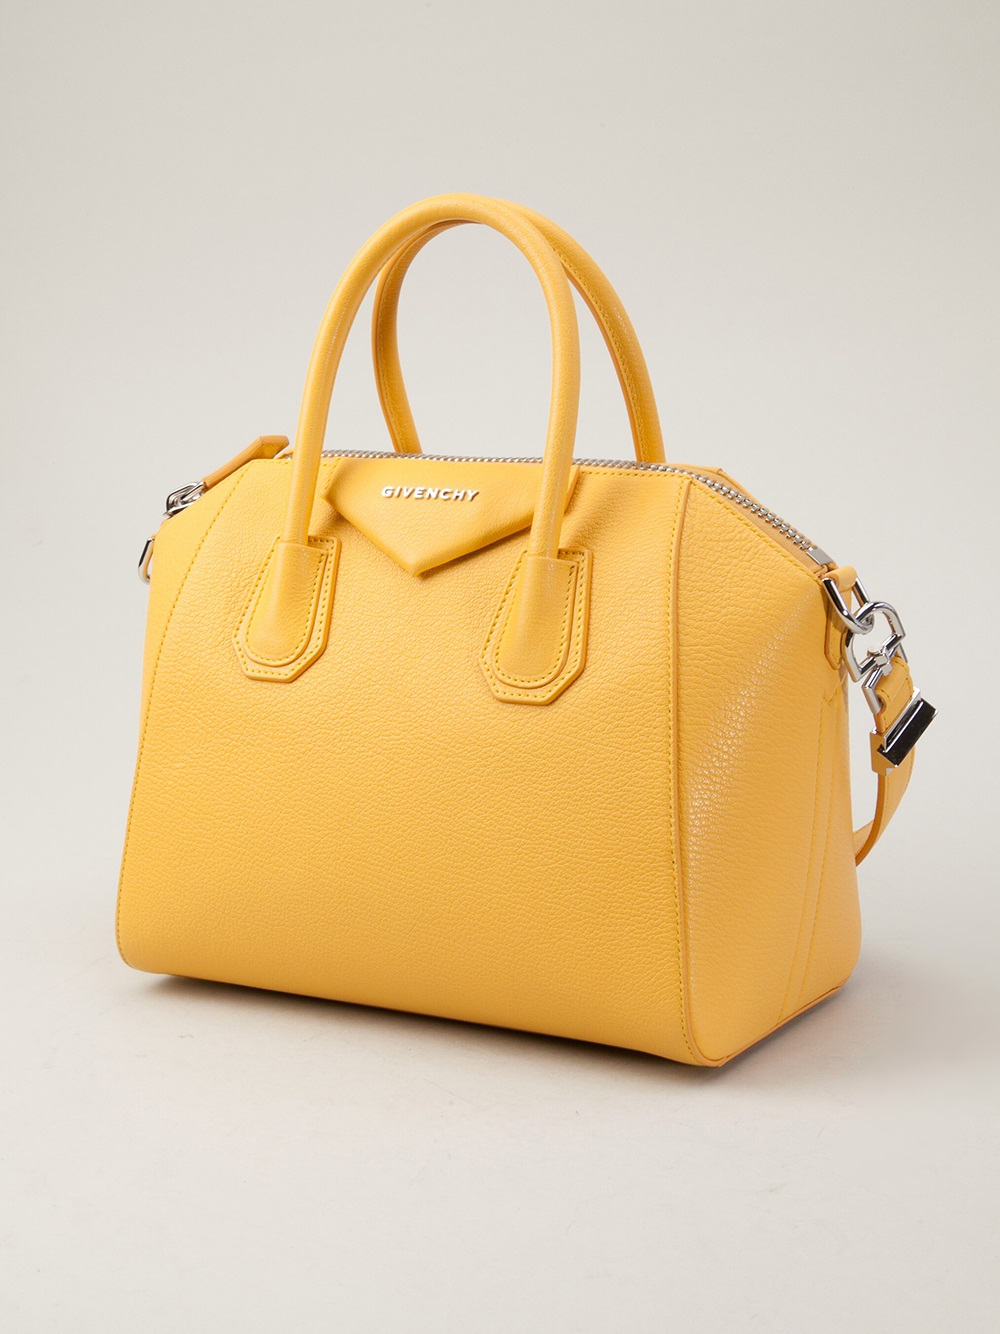 564578dbf7 Lyst - Givenchy Antigona Small Bag in Yellow